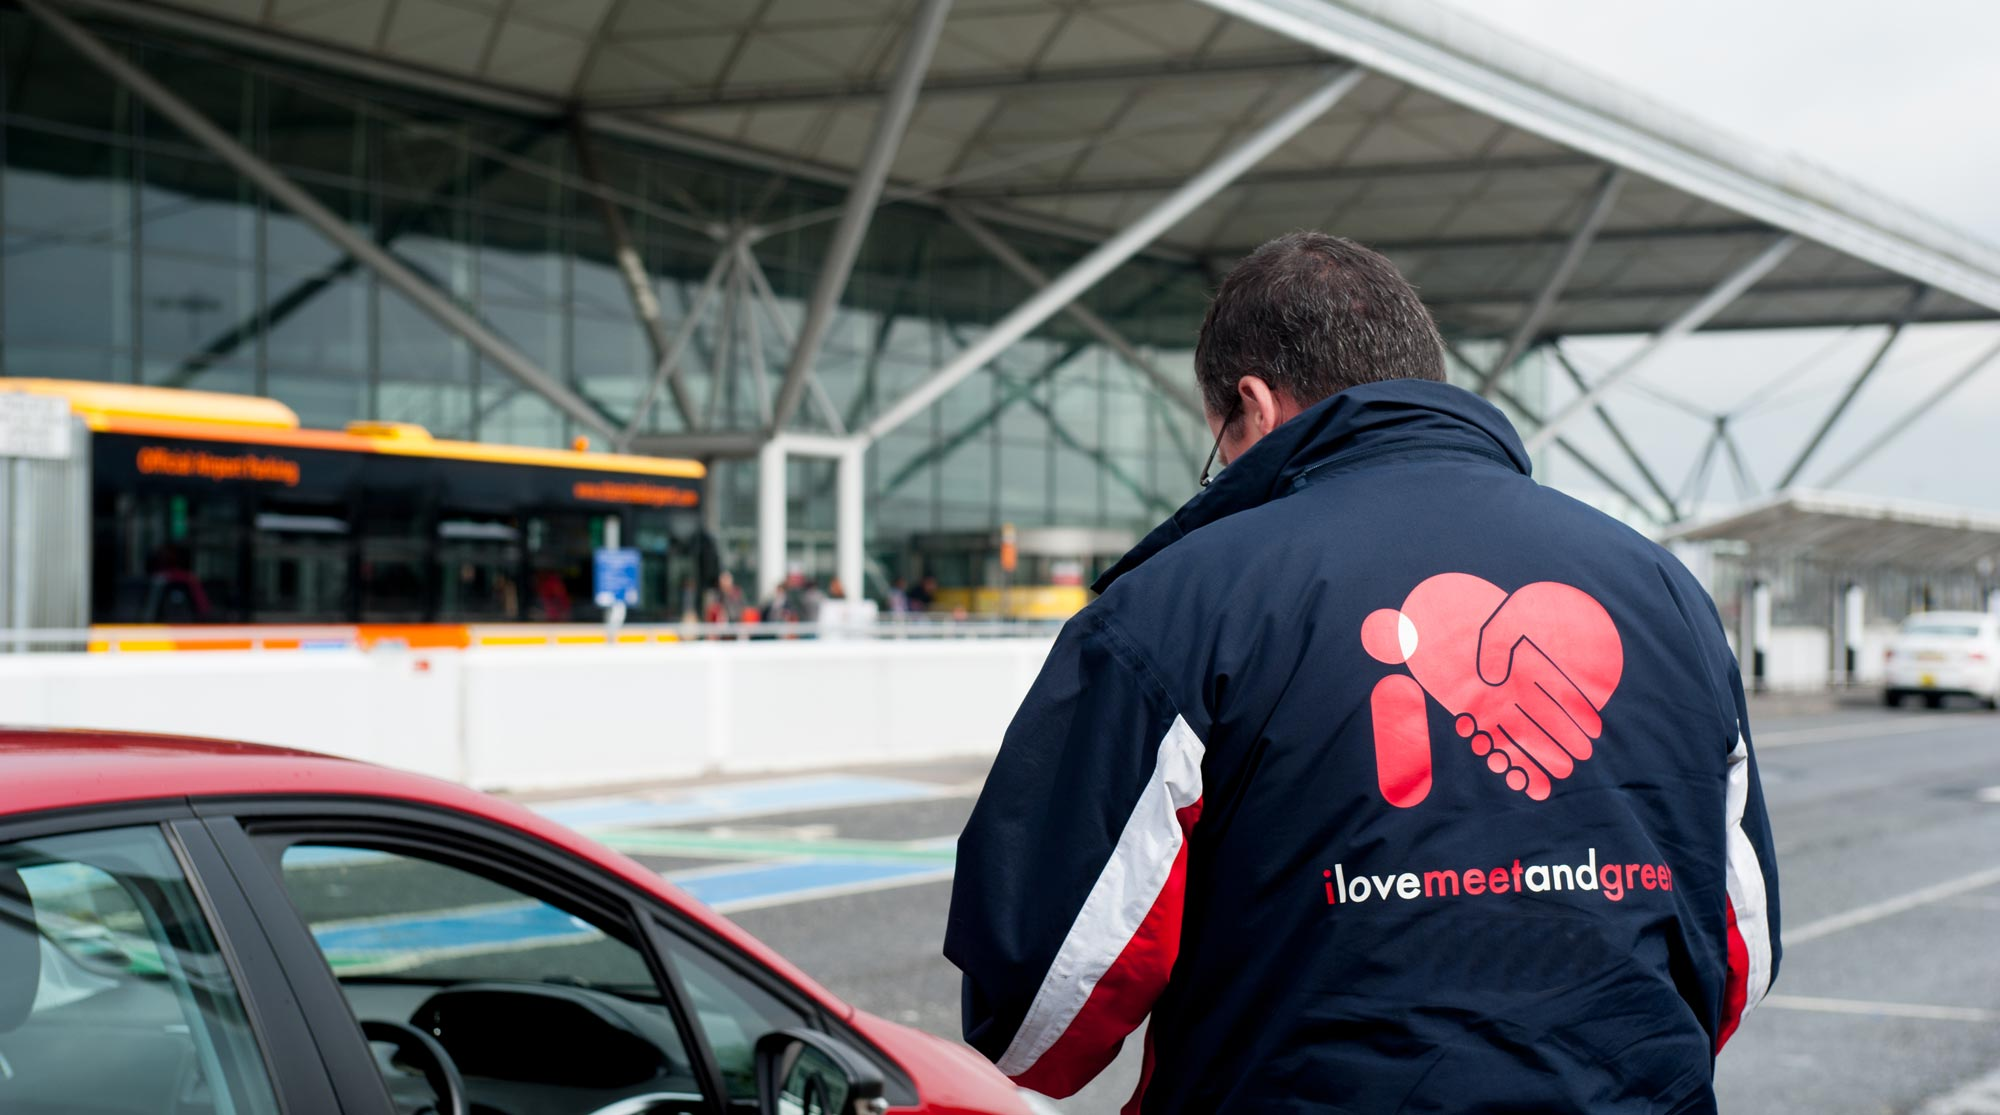 I love meet and greet stansted stansted airport parking i love meet and greet driver at terminal m4hsunfo